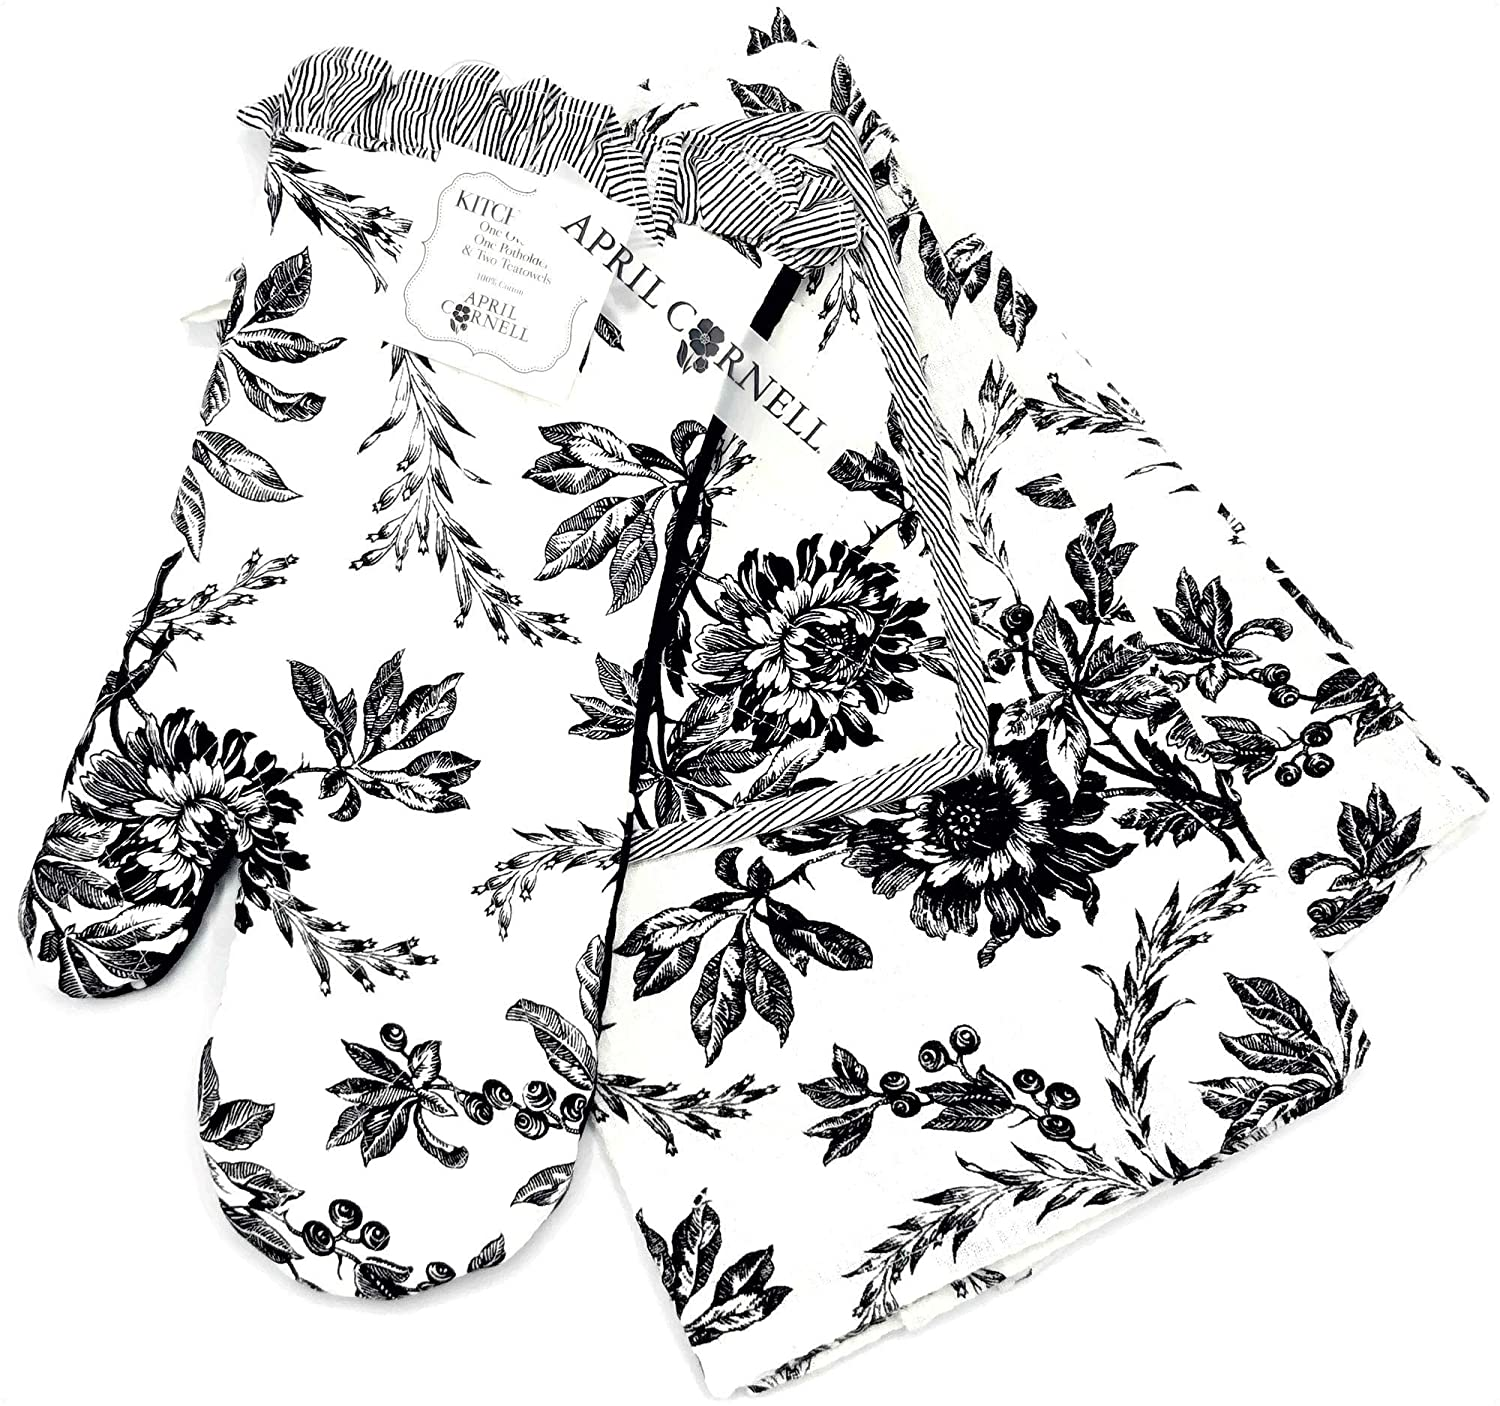 April Cornell Felicity Black Flowers Kitchen Set, Oven Mitt, Potholder, Tea Towel 4-Piece Set, Beautiful Sophisticated Floral Print in Black & White Design for Stunning Kitchen & Home Decor